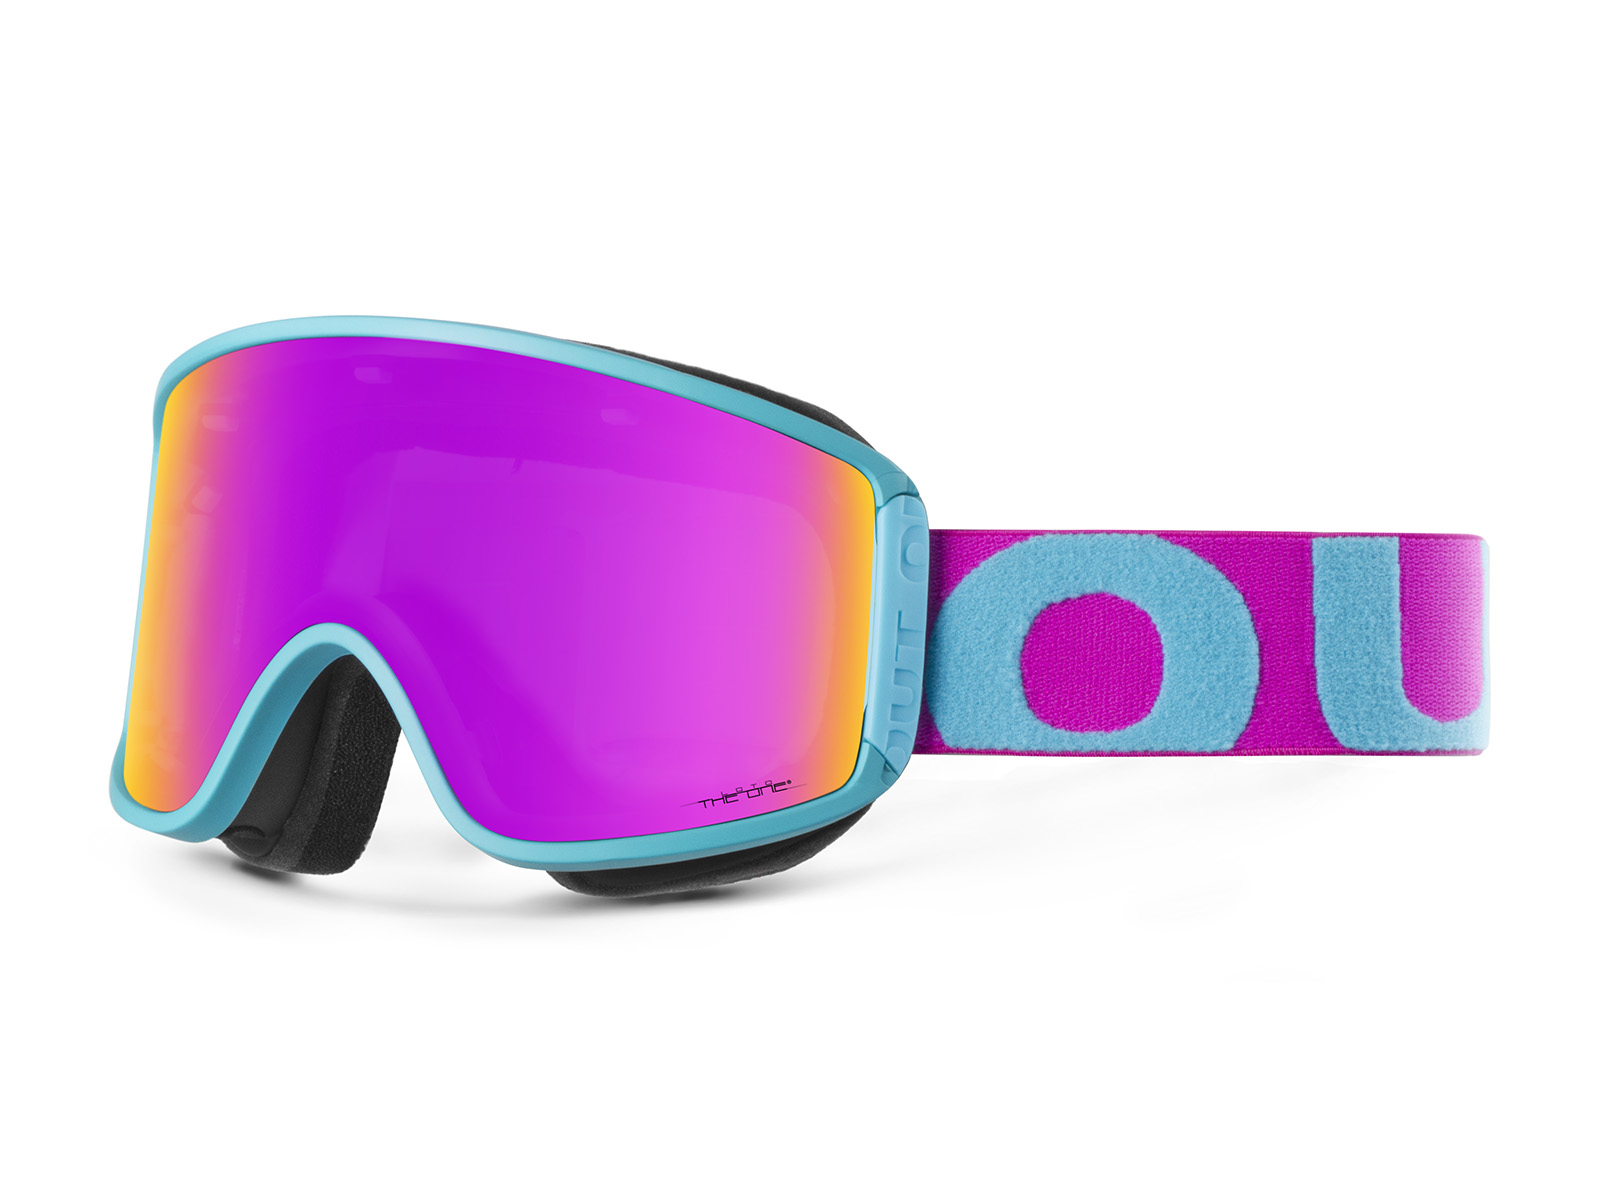 SHIFT TURQUOISE PINK THE ONE LOTO GOGGLE